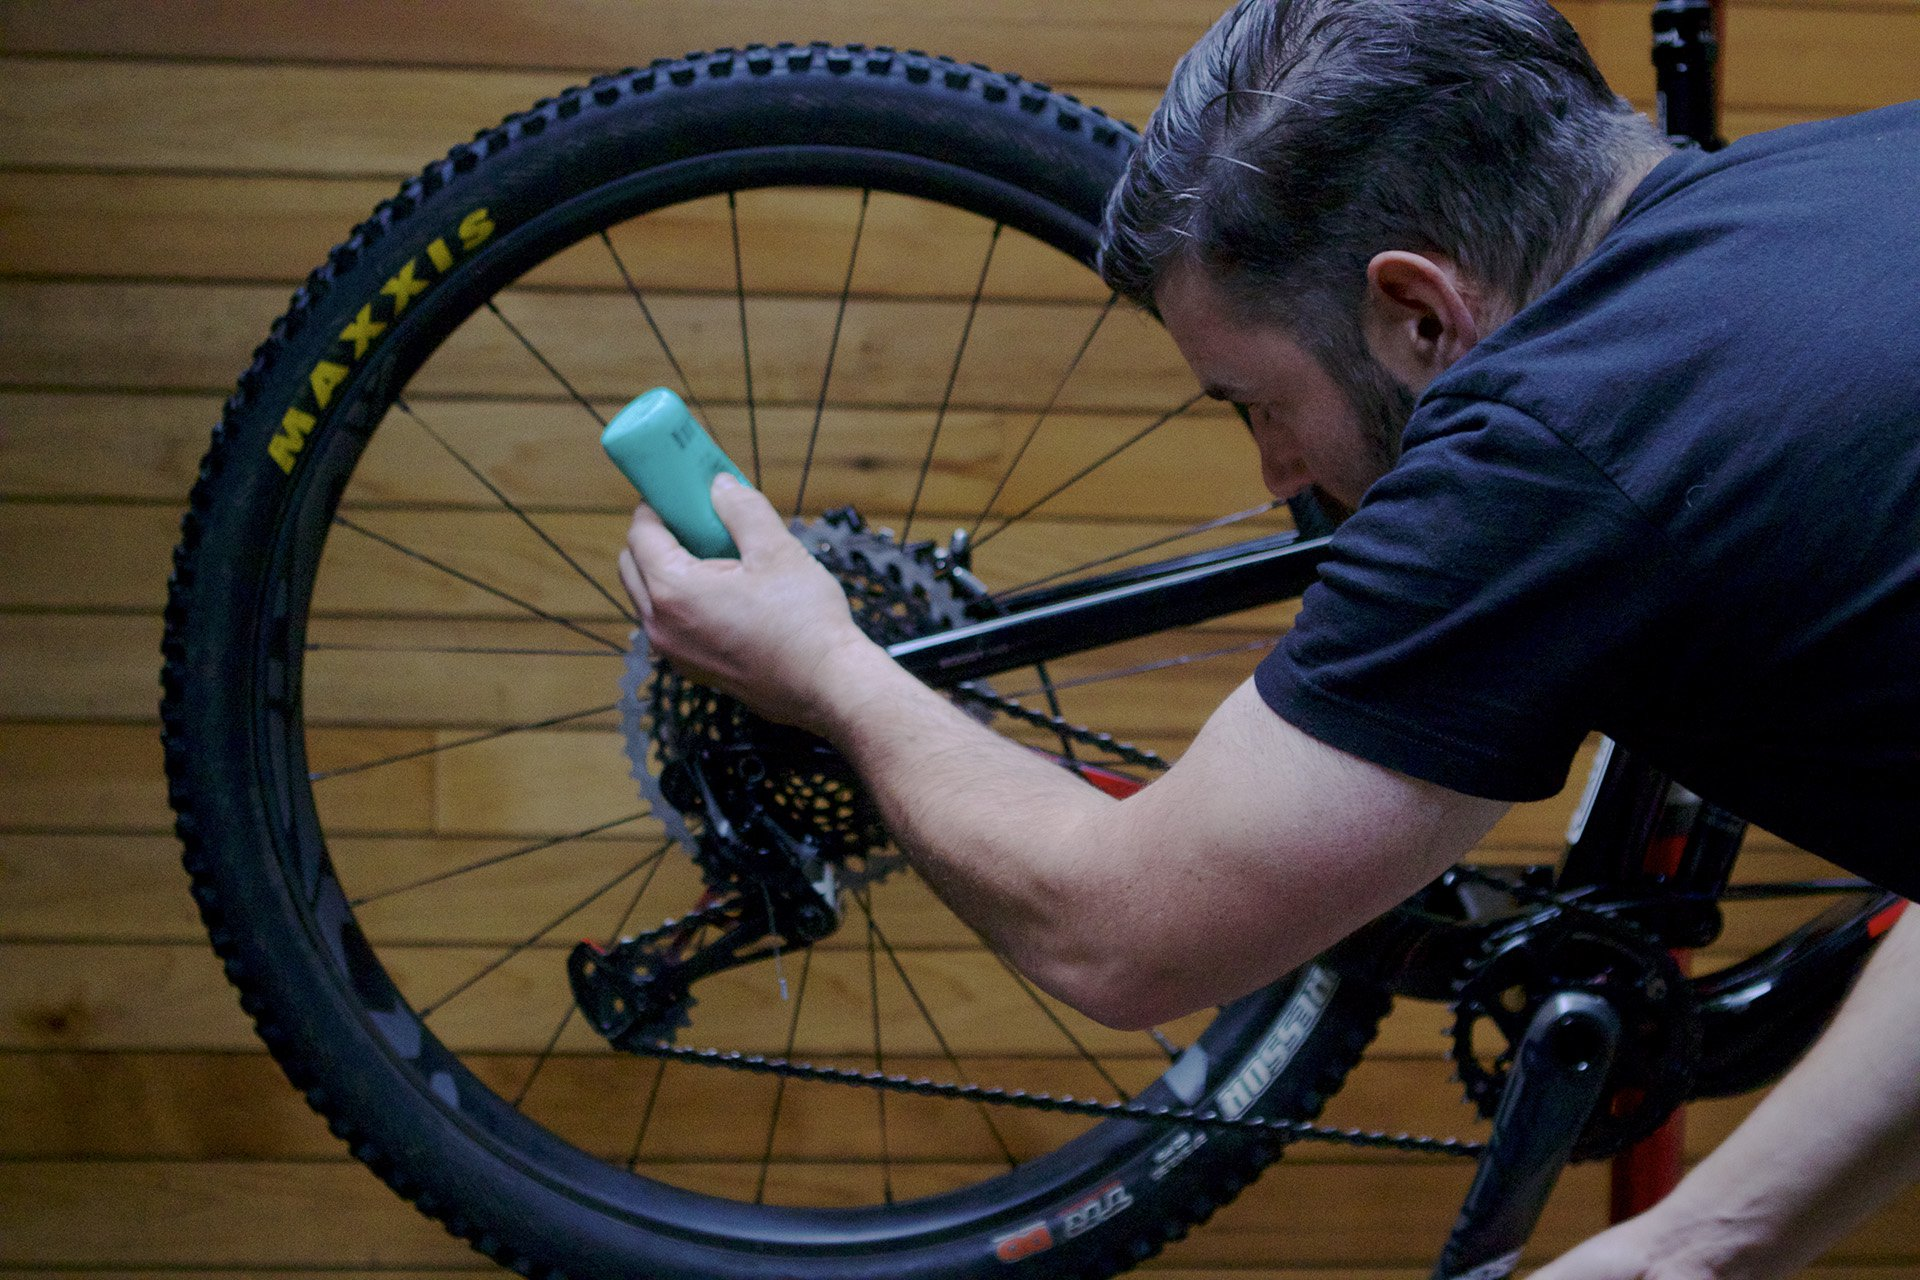 How To Get Bike Chain Grease Out Of Carpet Carpet Vidalondon